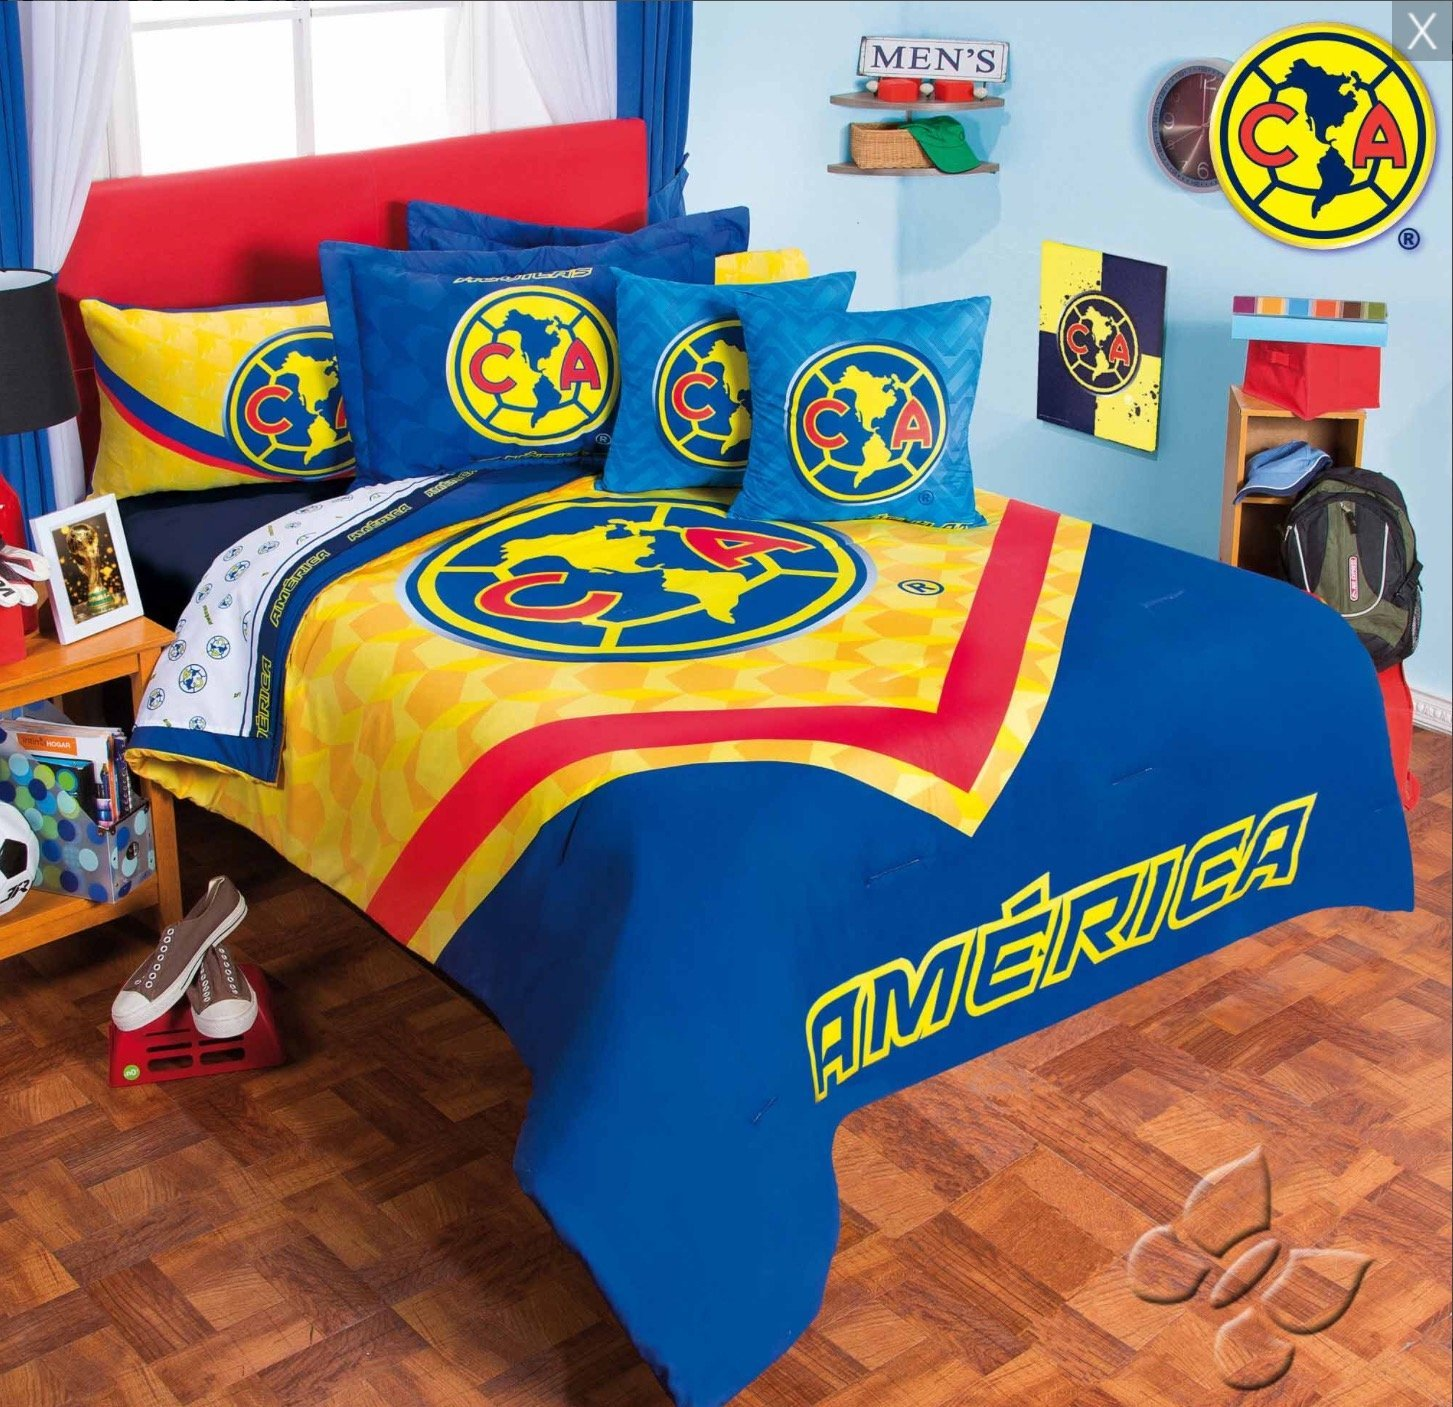 CLUB AGUILAS DEL AMERICA MEXICAN FOOTBALL ORIGINAL LICENSED COMFORTER SET AND SHEET SET 9 PCS QUEEN SIZE by JORGE'S HOME FASHION